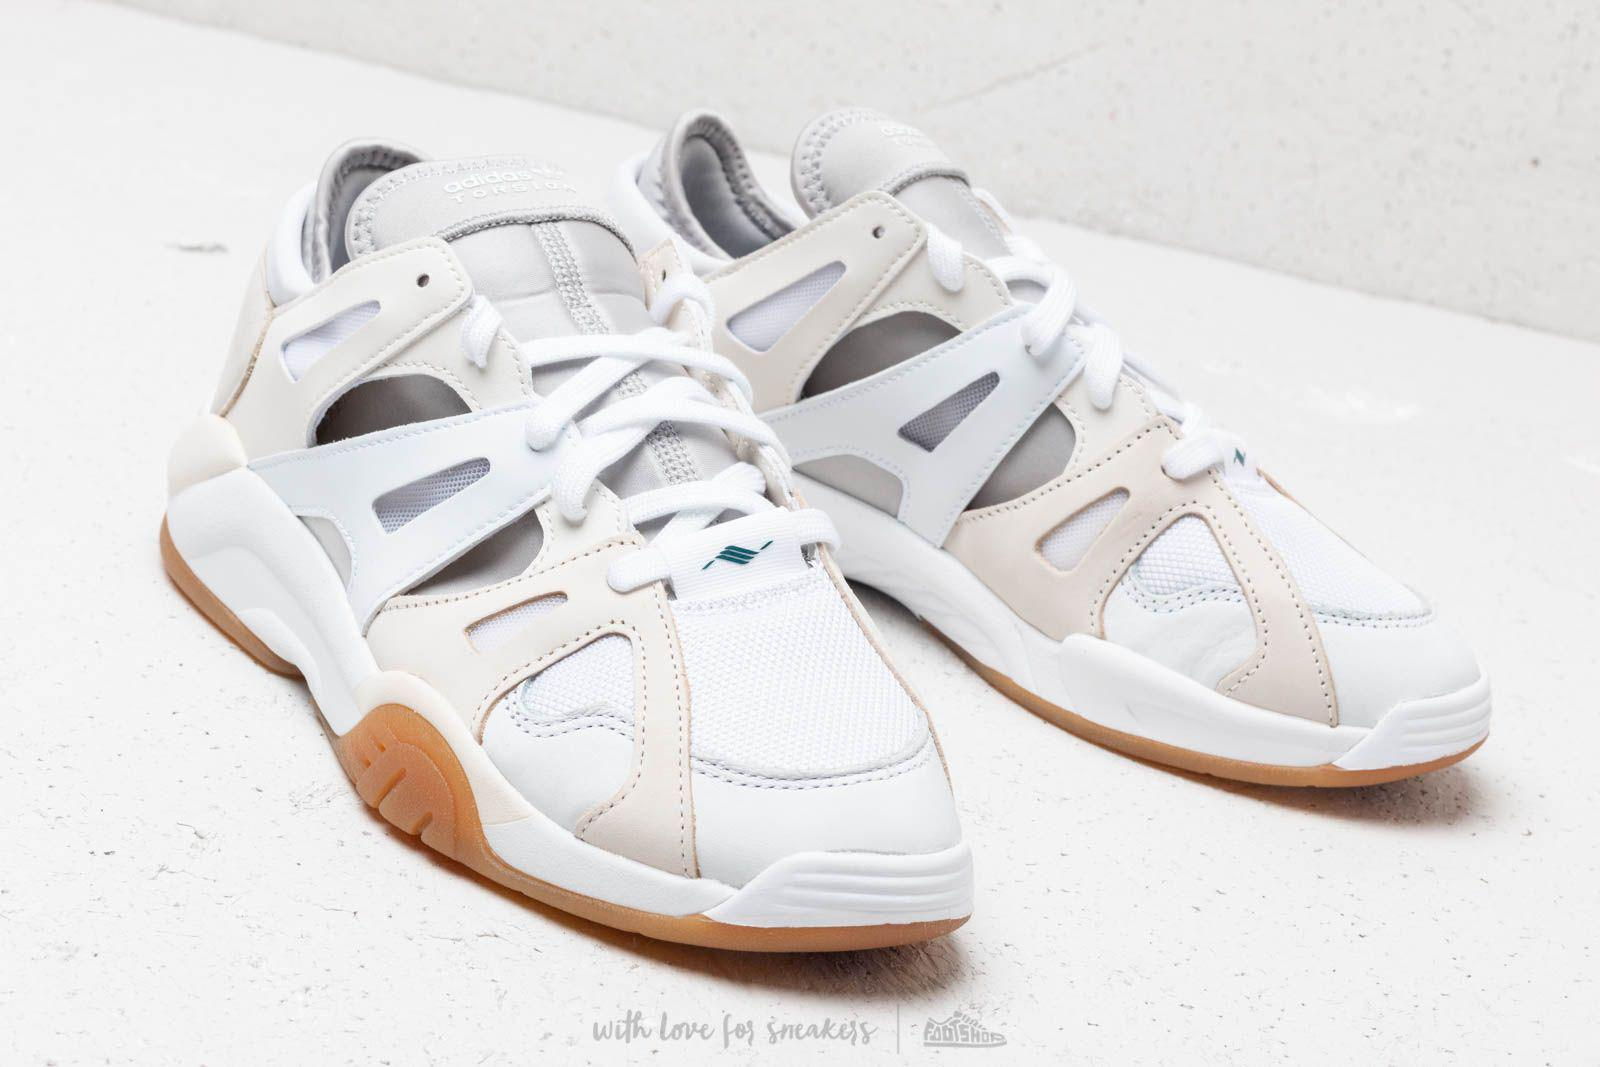 competitive price 0a05e 63eed Adidas Originals - White Dimension Low Leather, Neoprene And Mesh Sneakers  - Lyst. View fullscreen